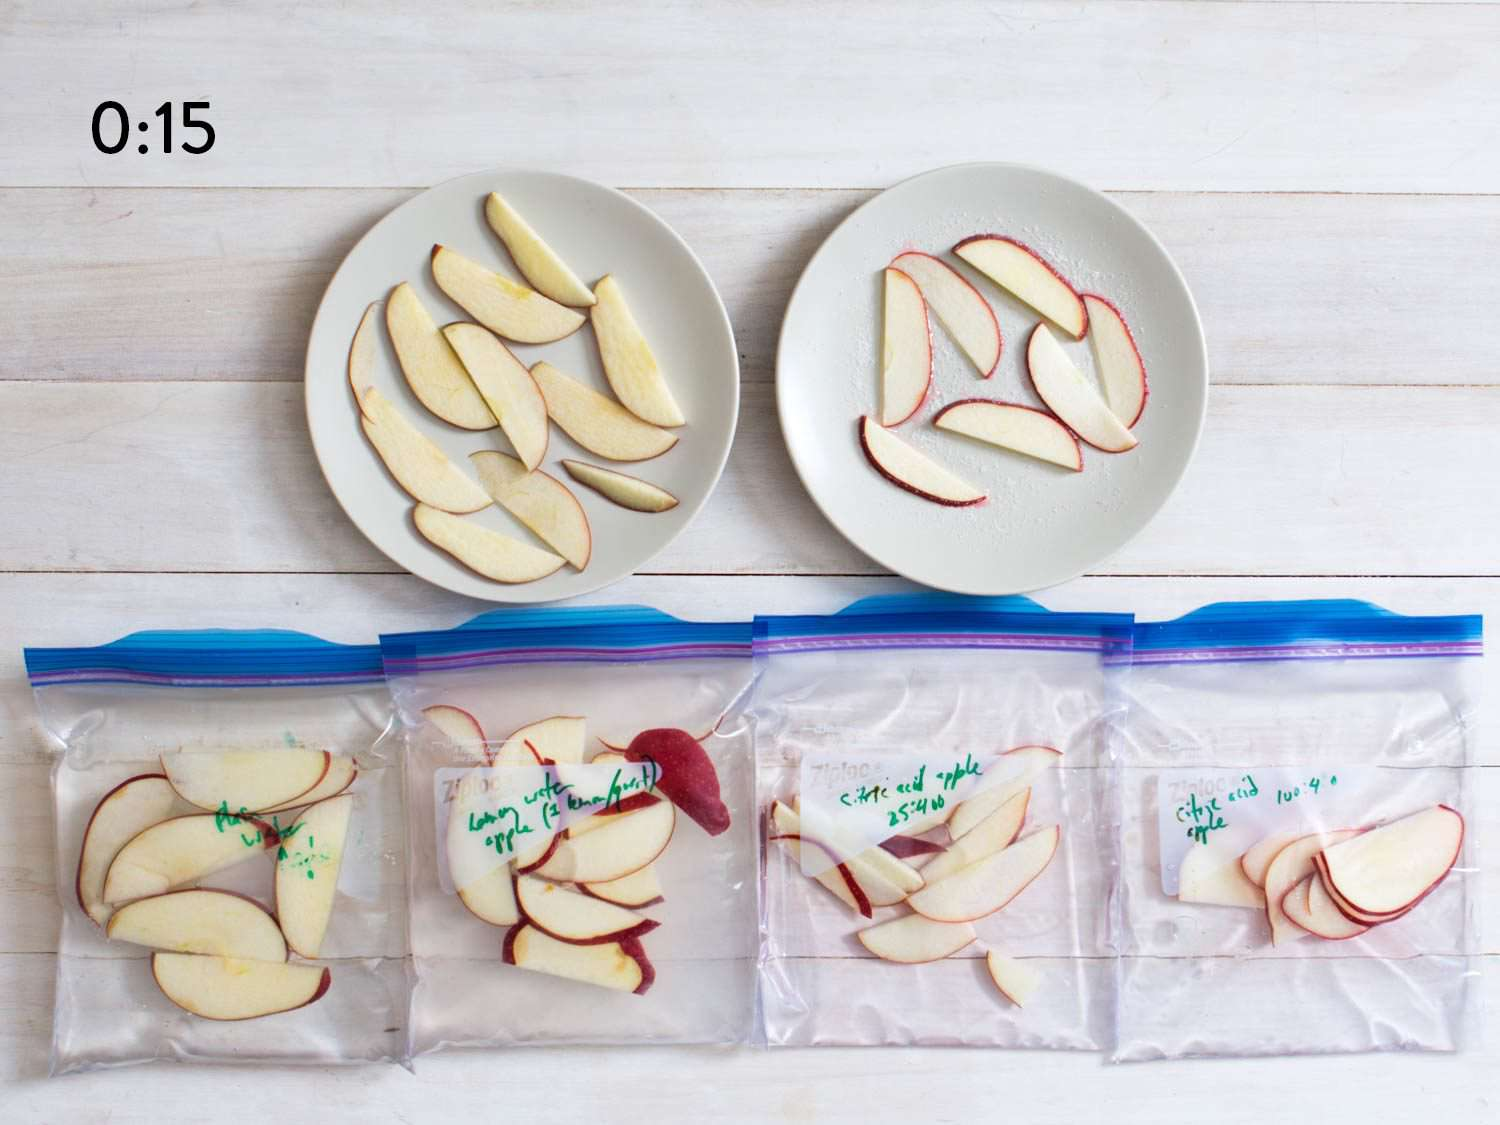 Comparison of bags of cut apples after 15 seconds.